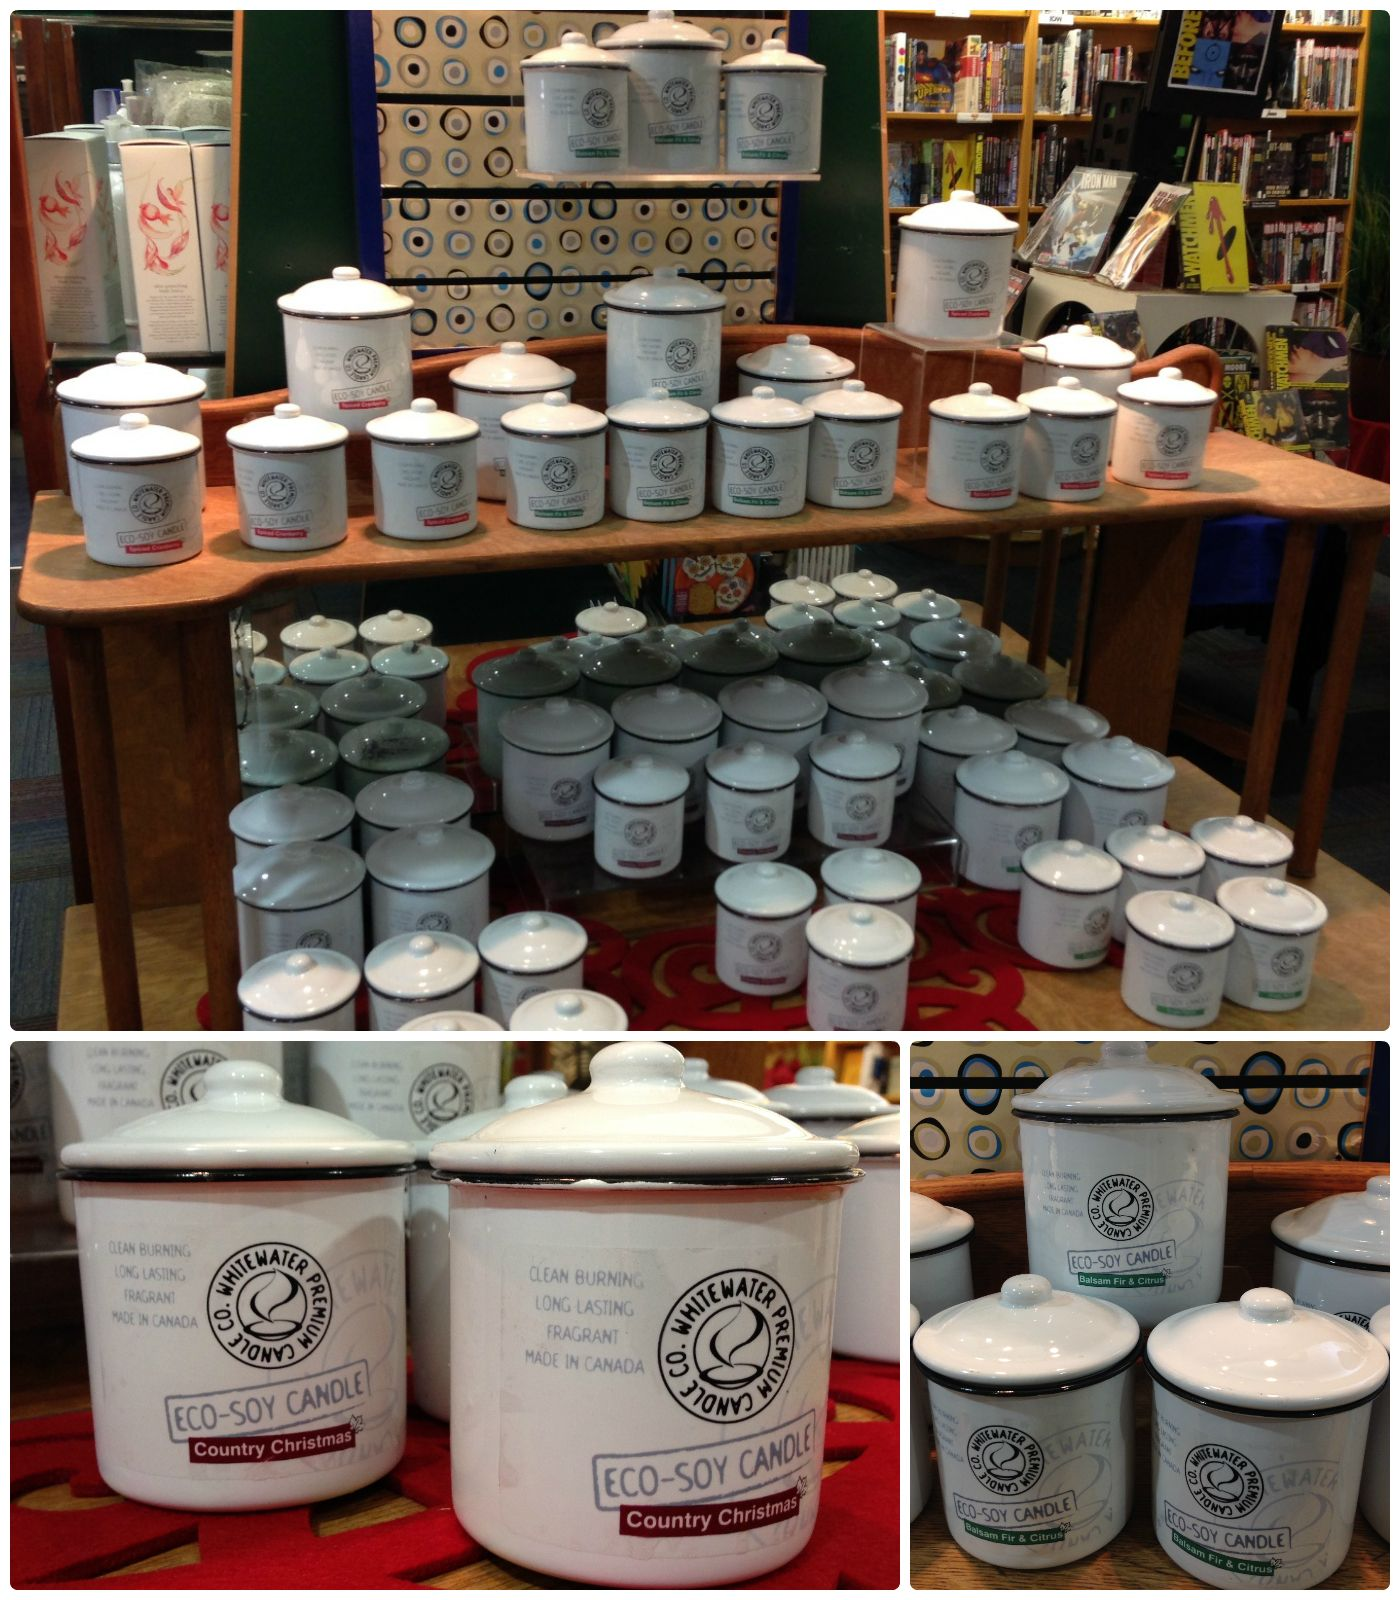 Eco-soy candles made by Whitewater Premium Candle Co. Clean burning, long lasting, fragrant, and made in Canada! Find Front Porch, Country Christmas, Spiced Cranberry, Balsam Fir and Citrus, Cedar Cabin. #candles #soy #MadeInCanada